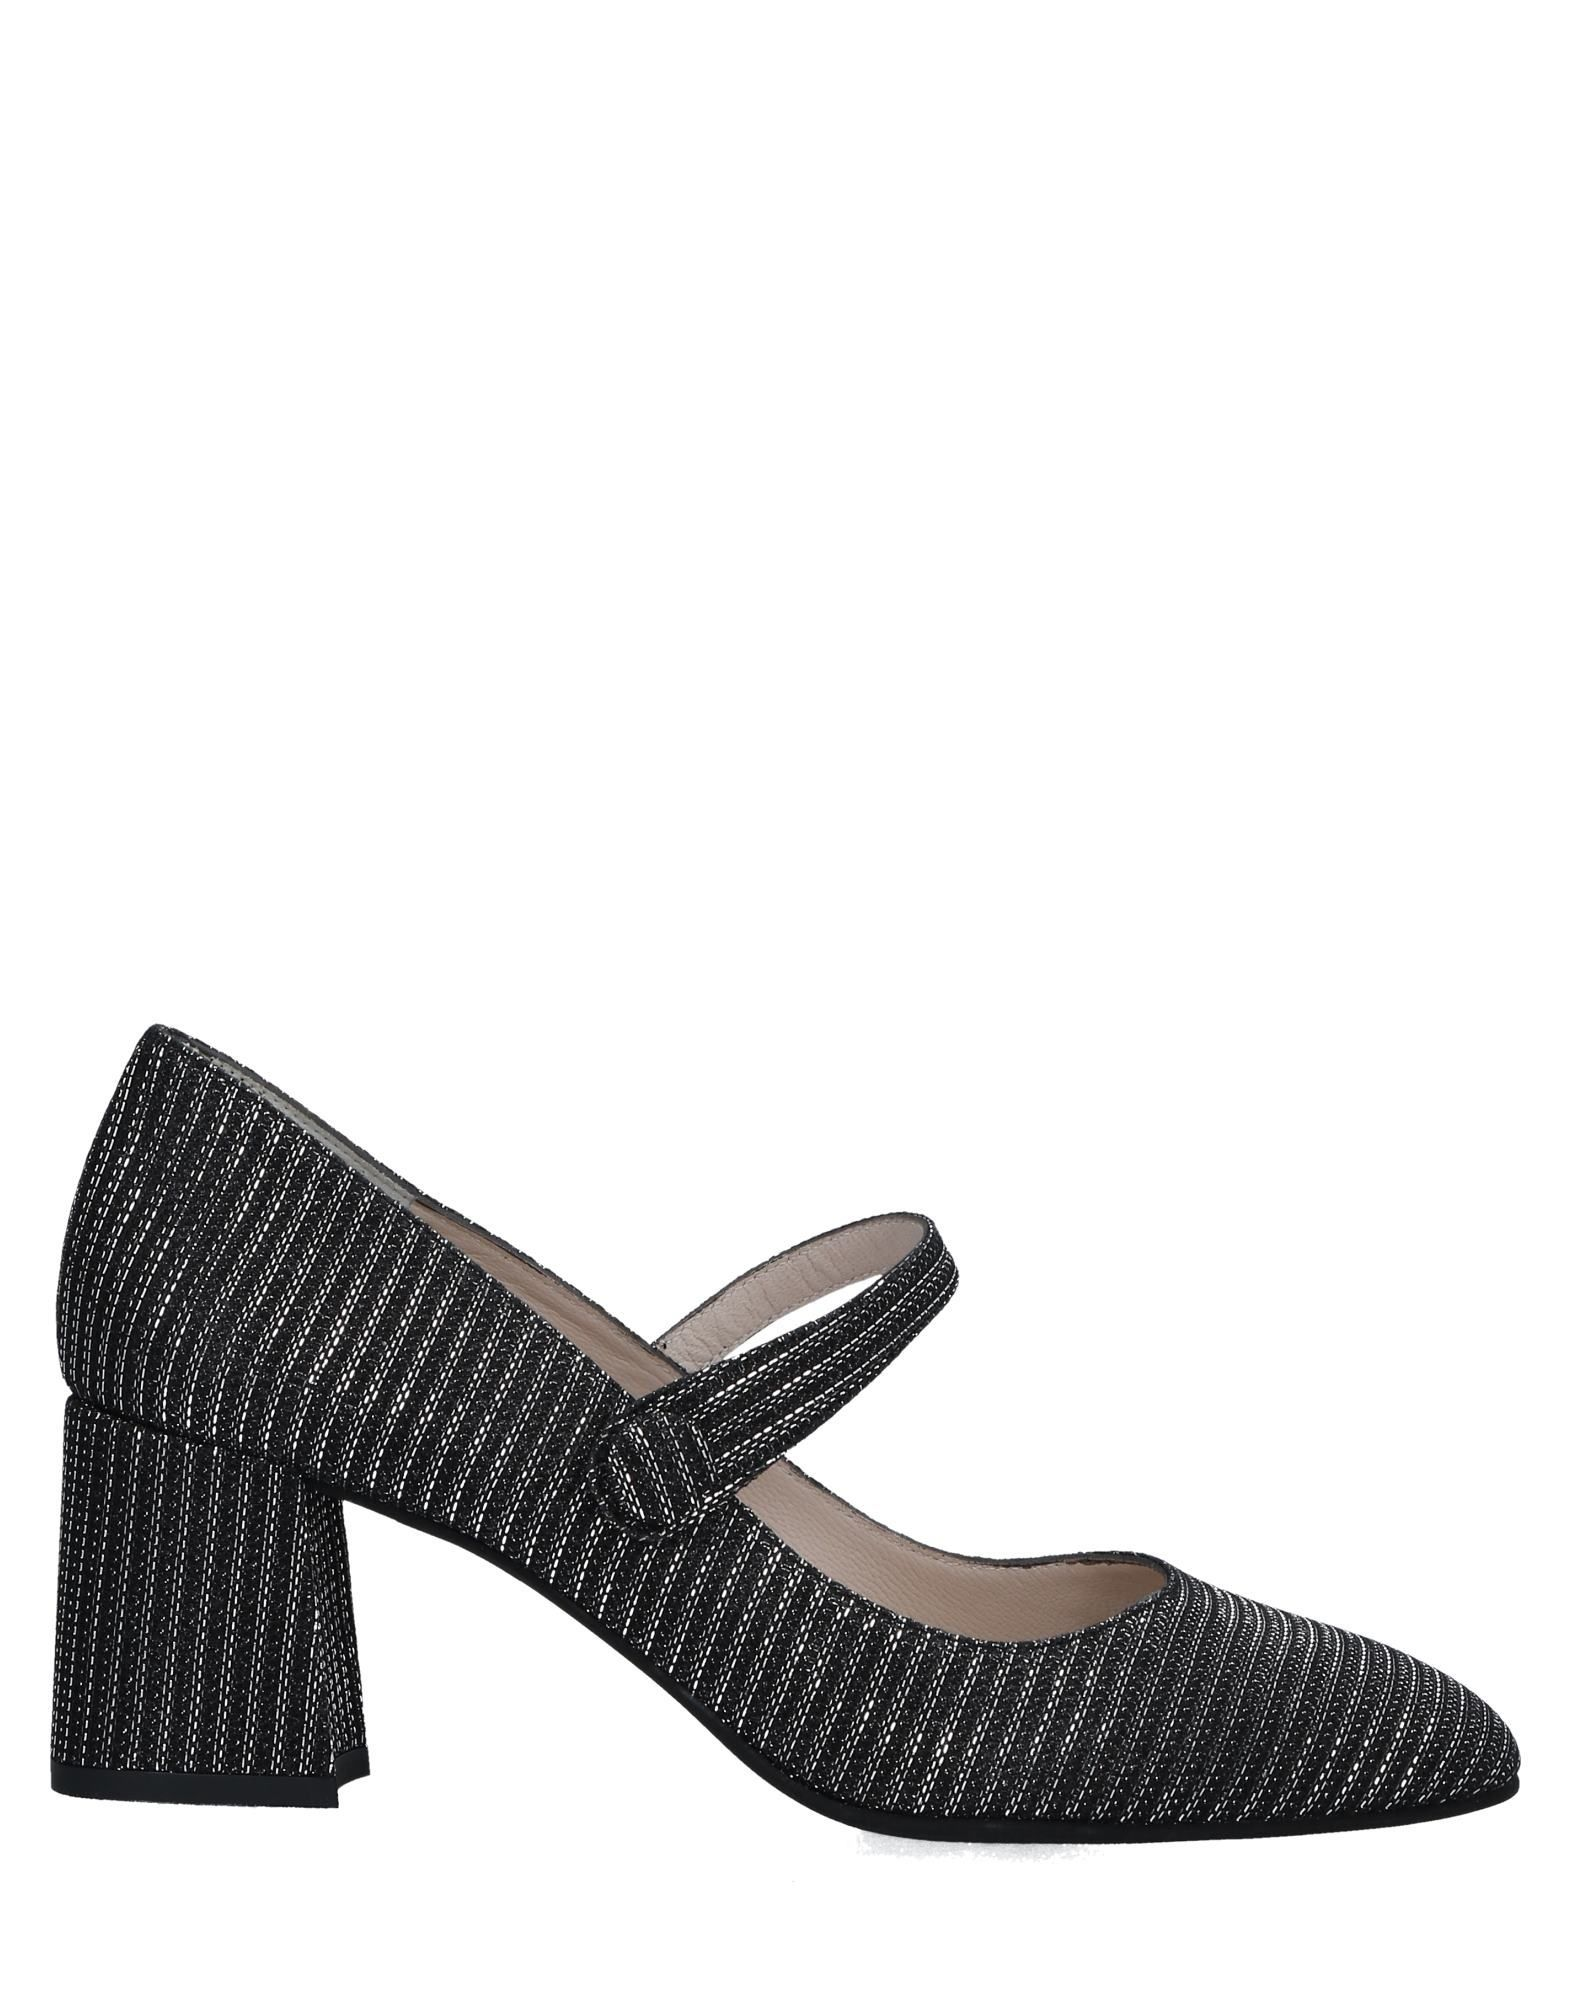 FOOTWEAR Ancarani Black Woman Technical fibres